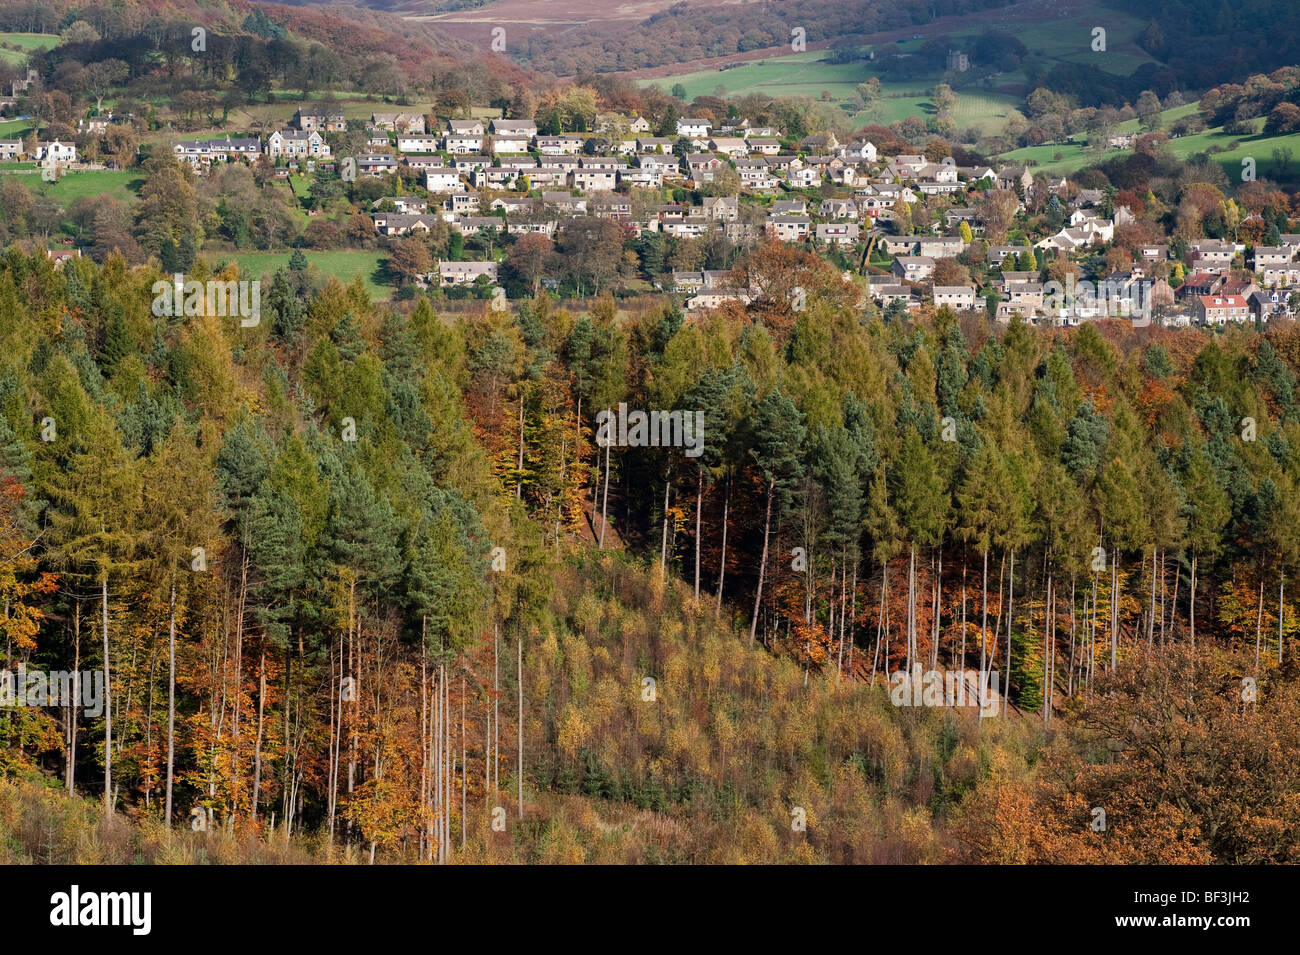 New and Old fir trees, saplings and hillside housing at Hathersage village - Stock Image